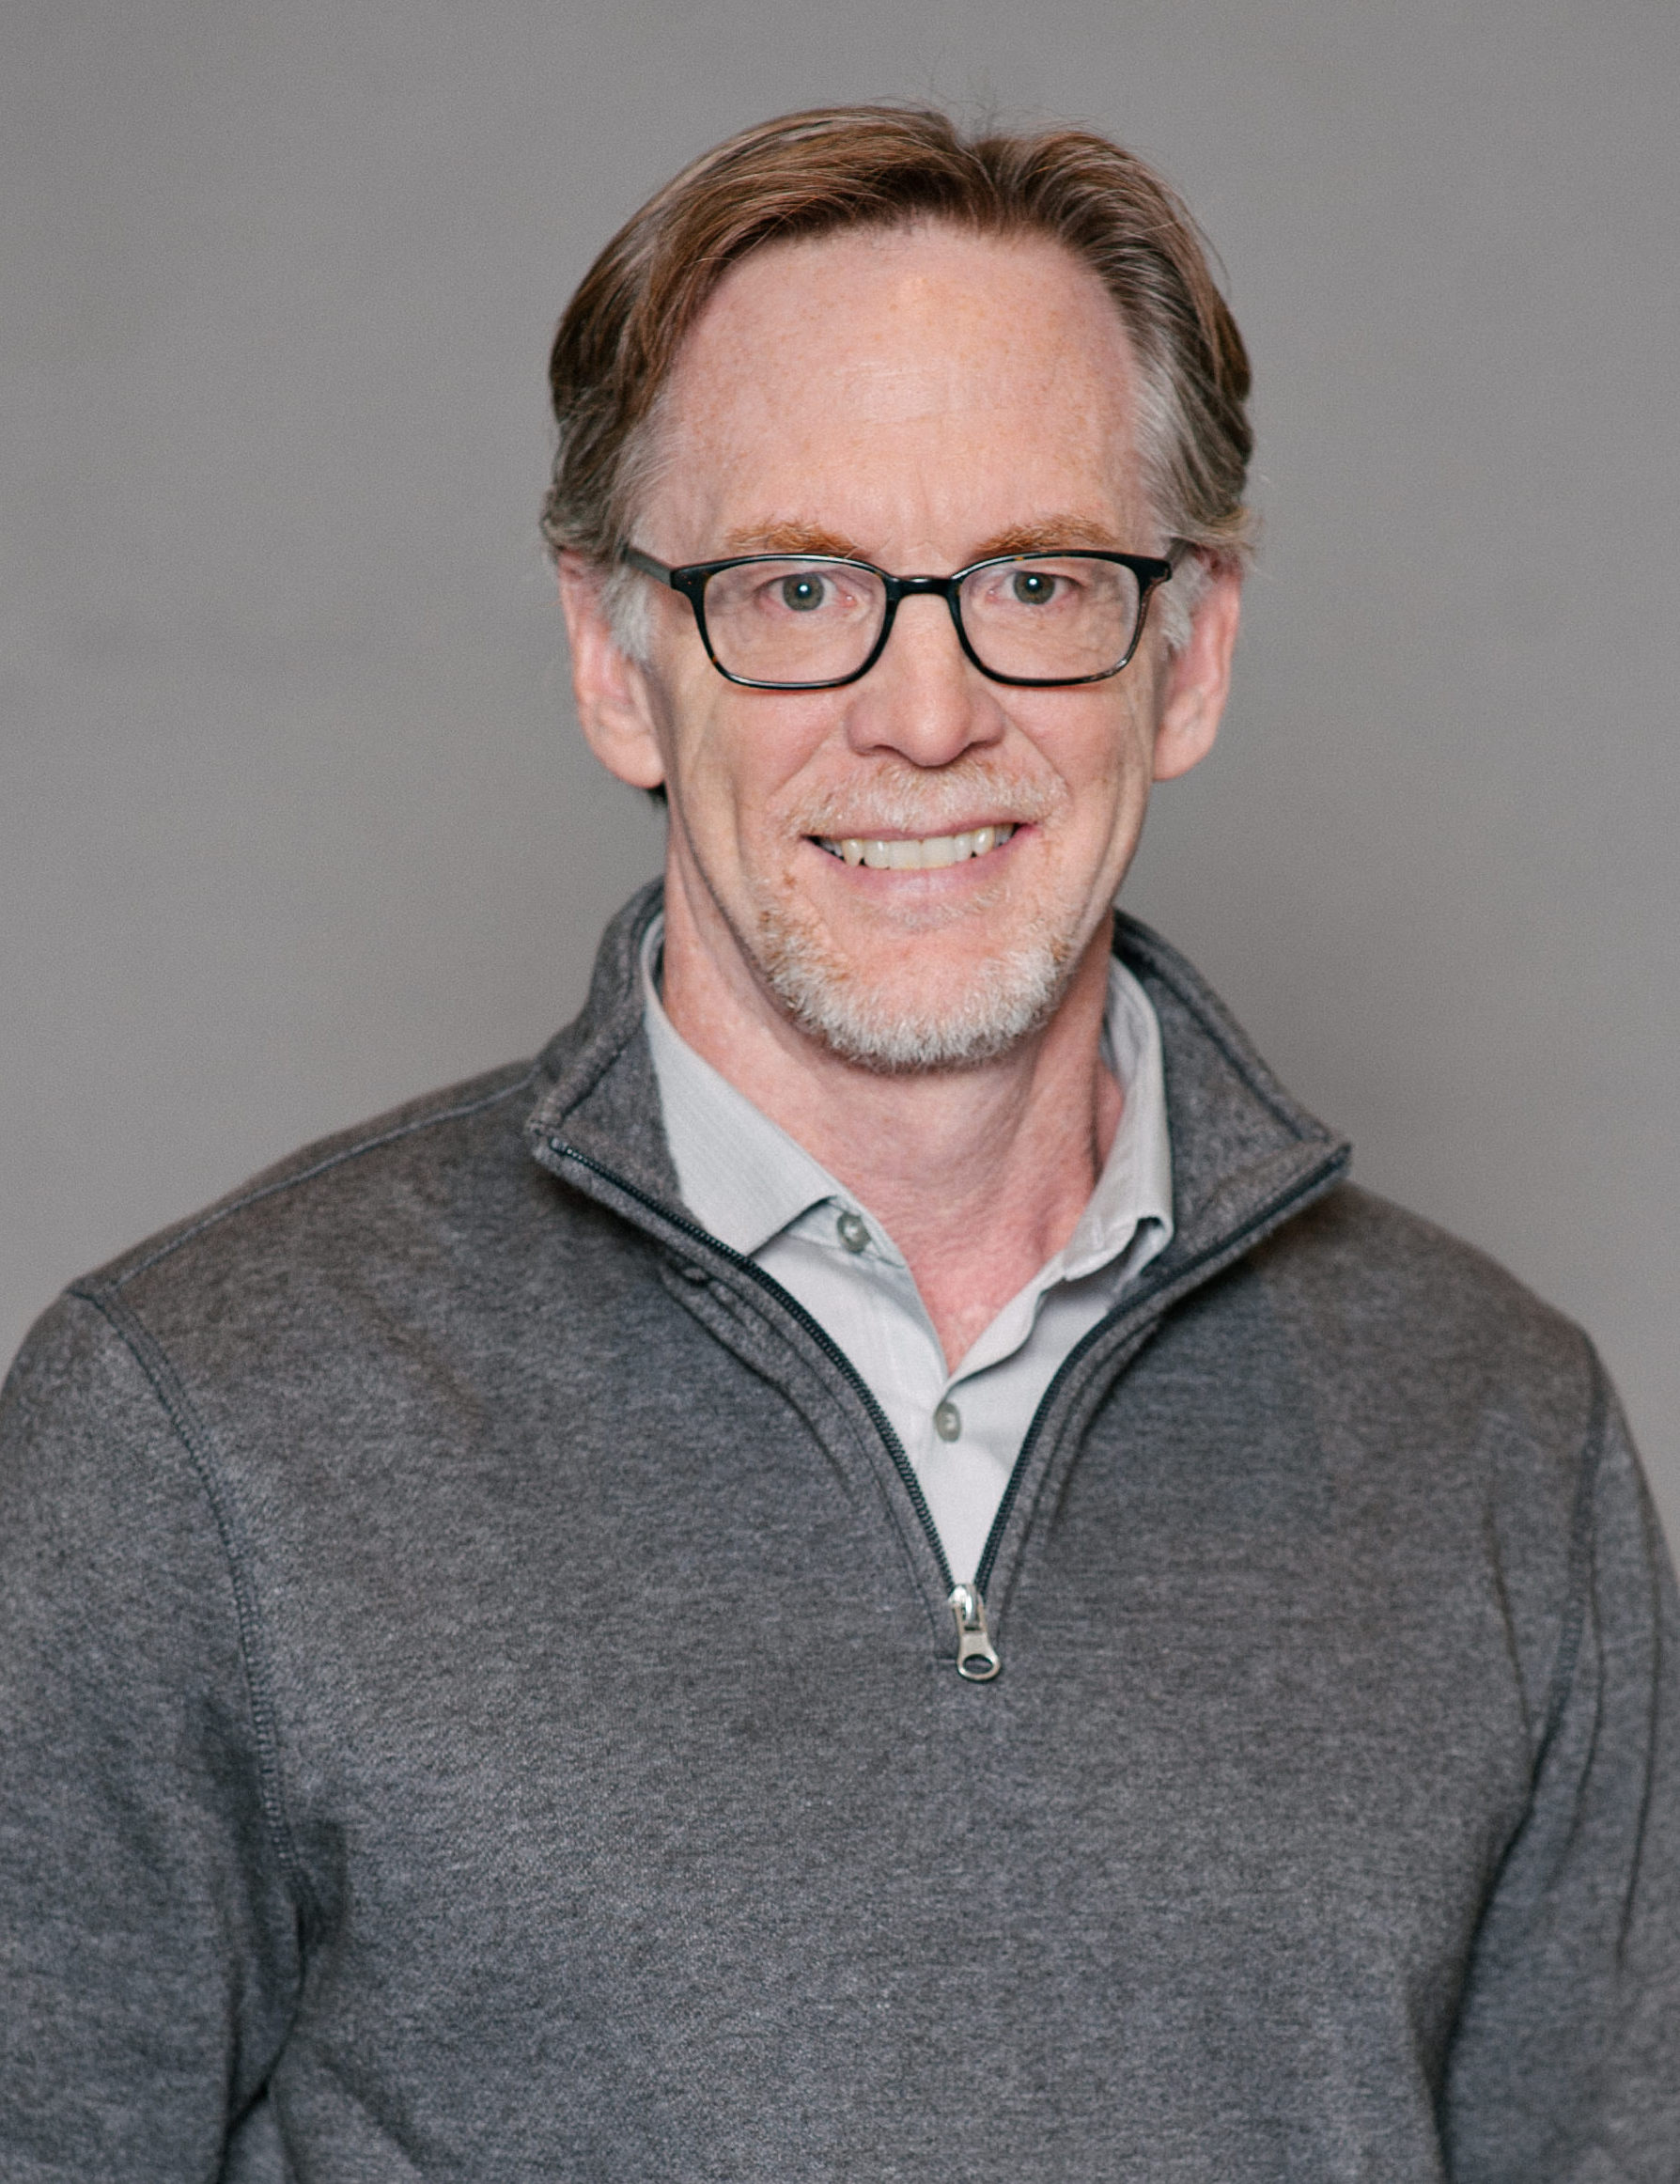 A picture of Doug Henry smiling